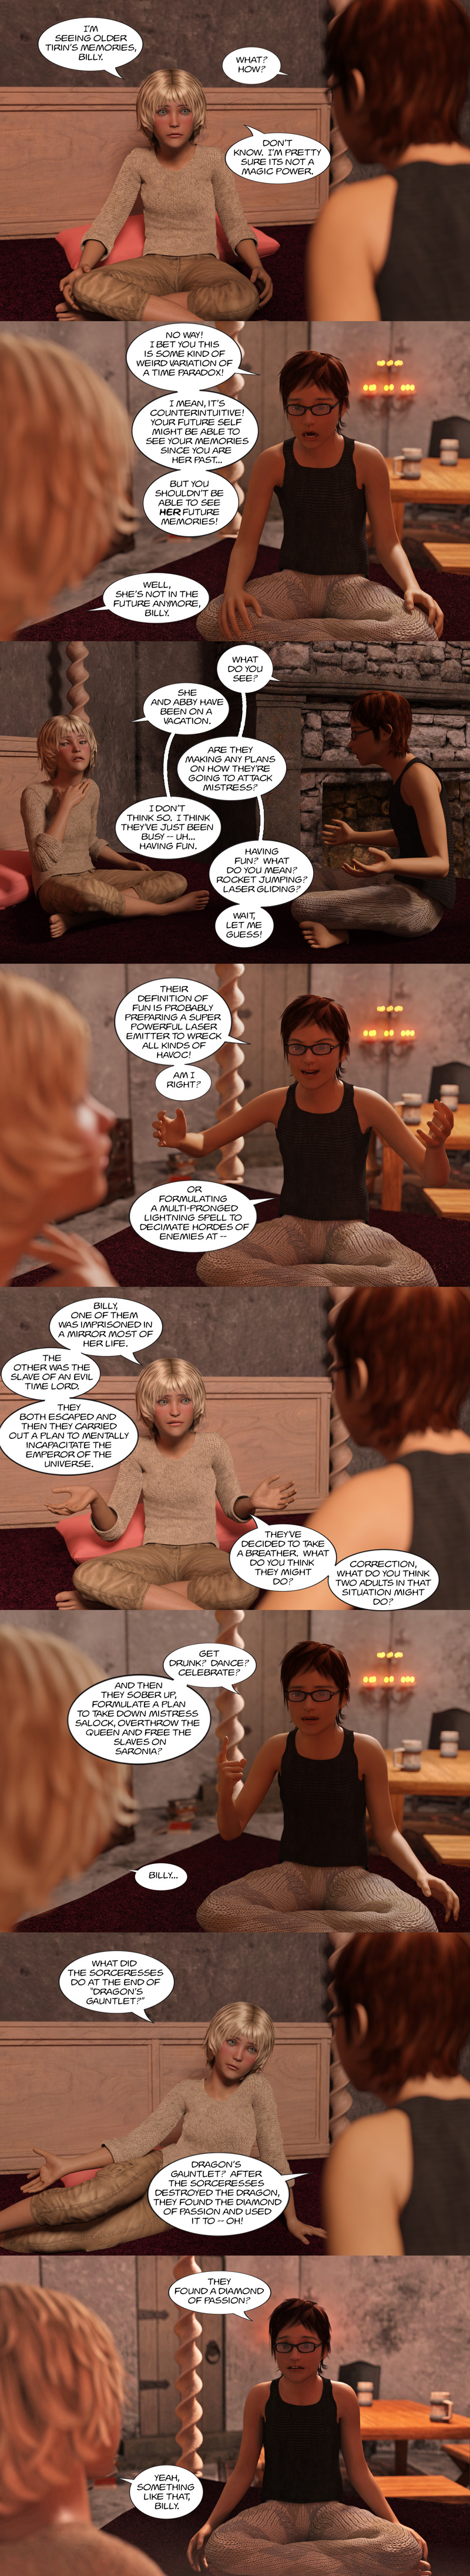 Chapter 16, page 14